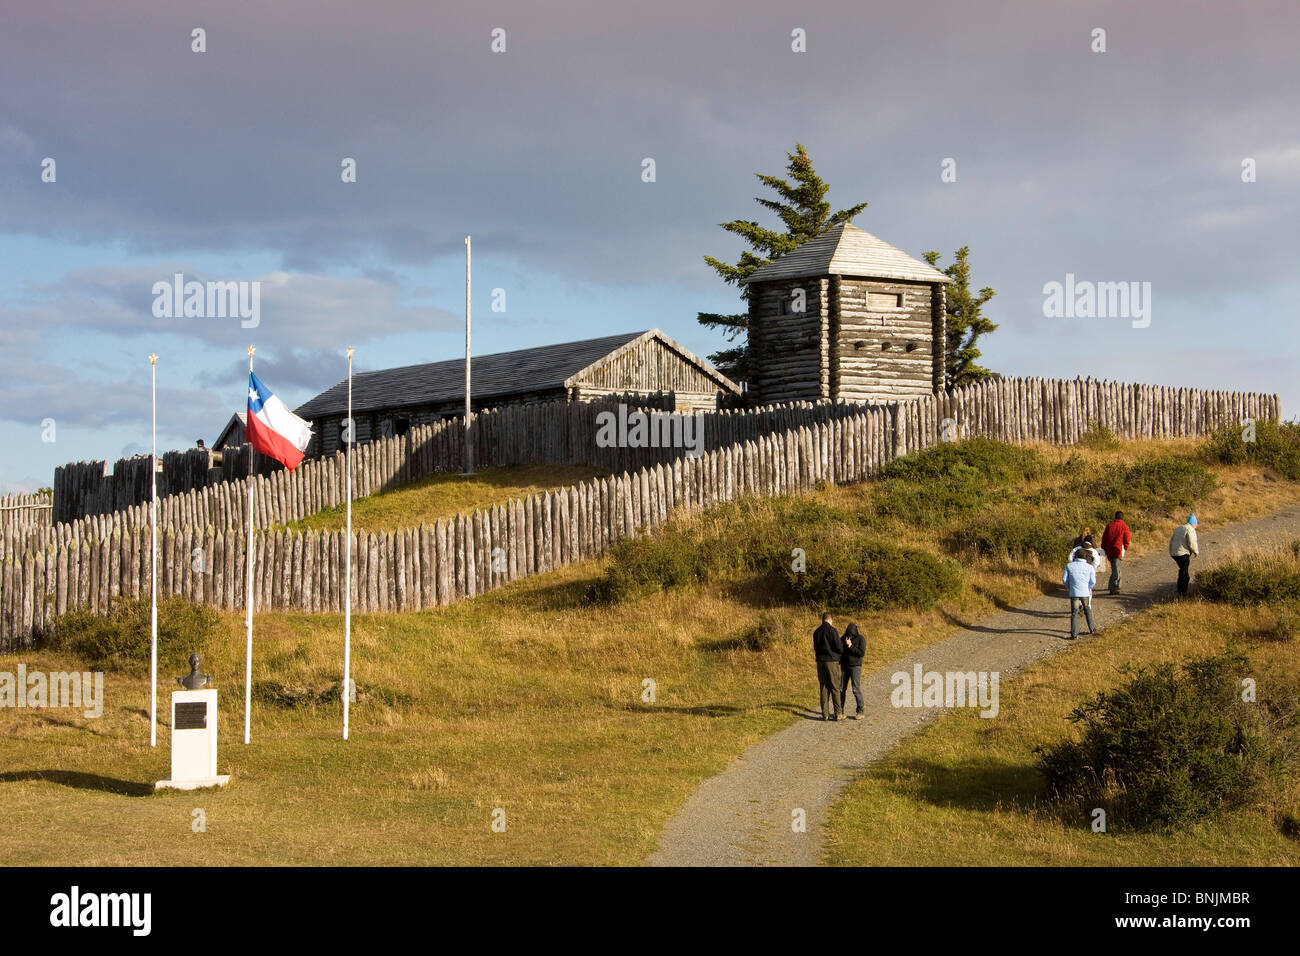 Chile South America March 2009 Chilean Patagonia Strait of Magellan Bulnes Fort wooden wood palisade historic historcial Stock Photo